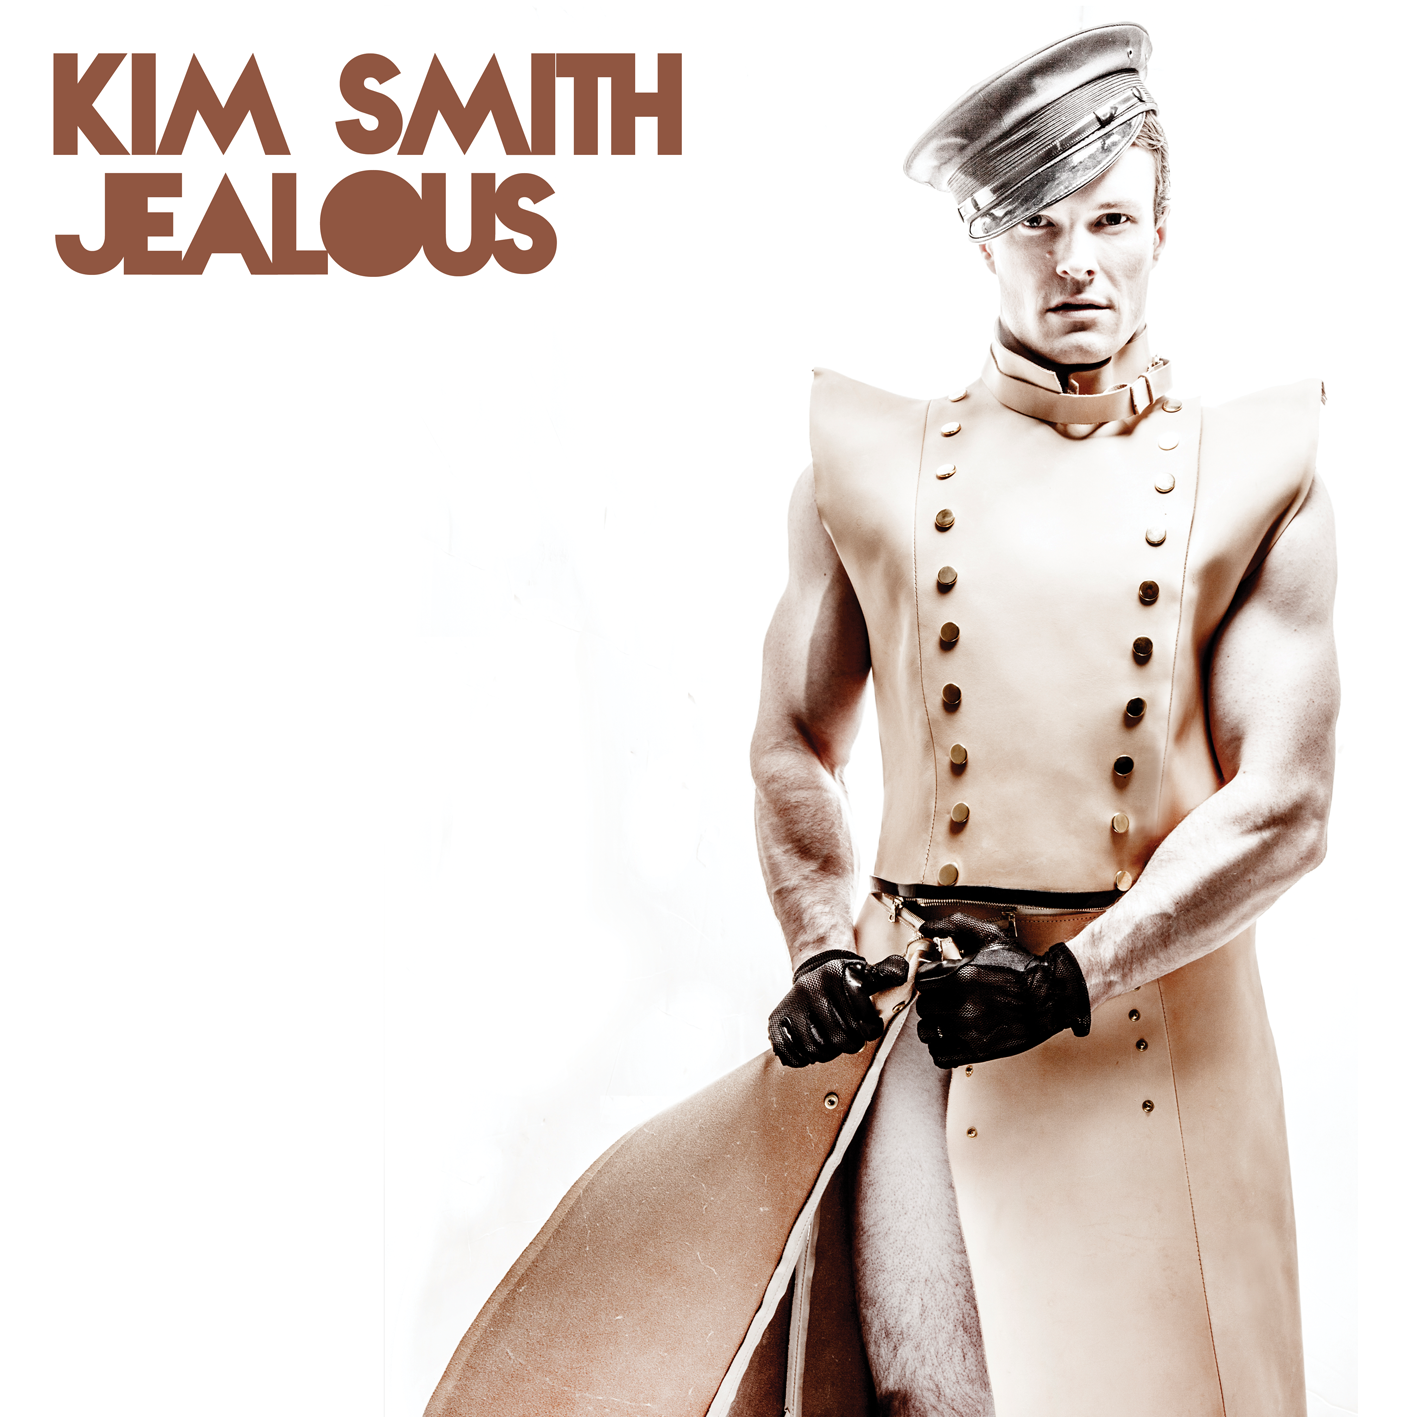 Jealous EP Cover Art. Image by RAM IMAGERY, design by LIAM CURRY.